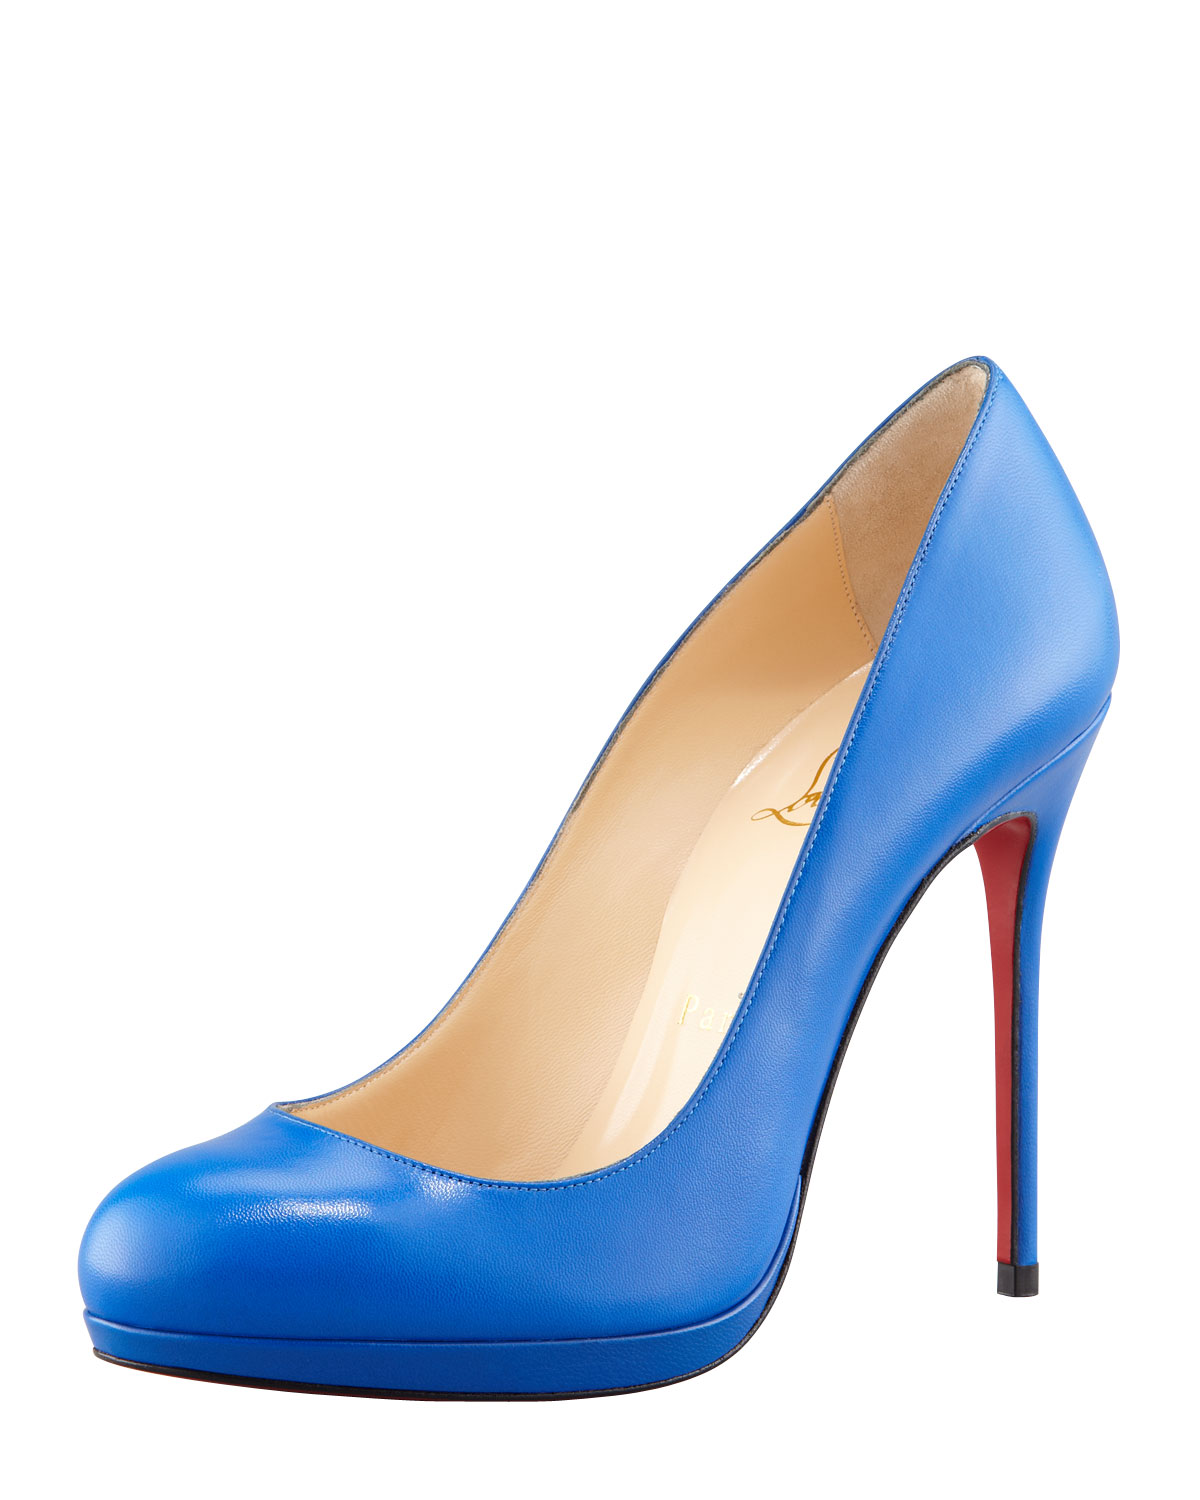 1abc4c74641f Lyst - Christian Louboutin Filo Leather Red Sole Pump Blue Sapphire ...